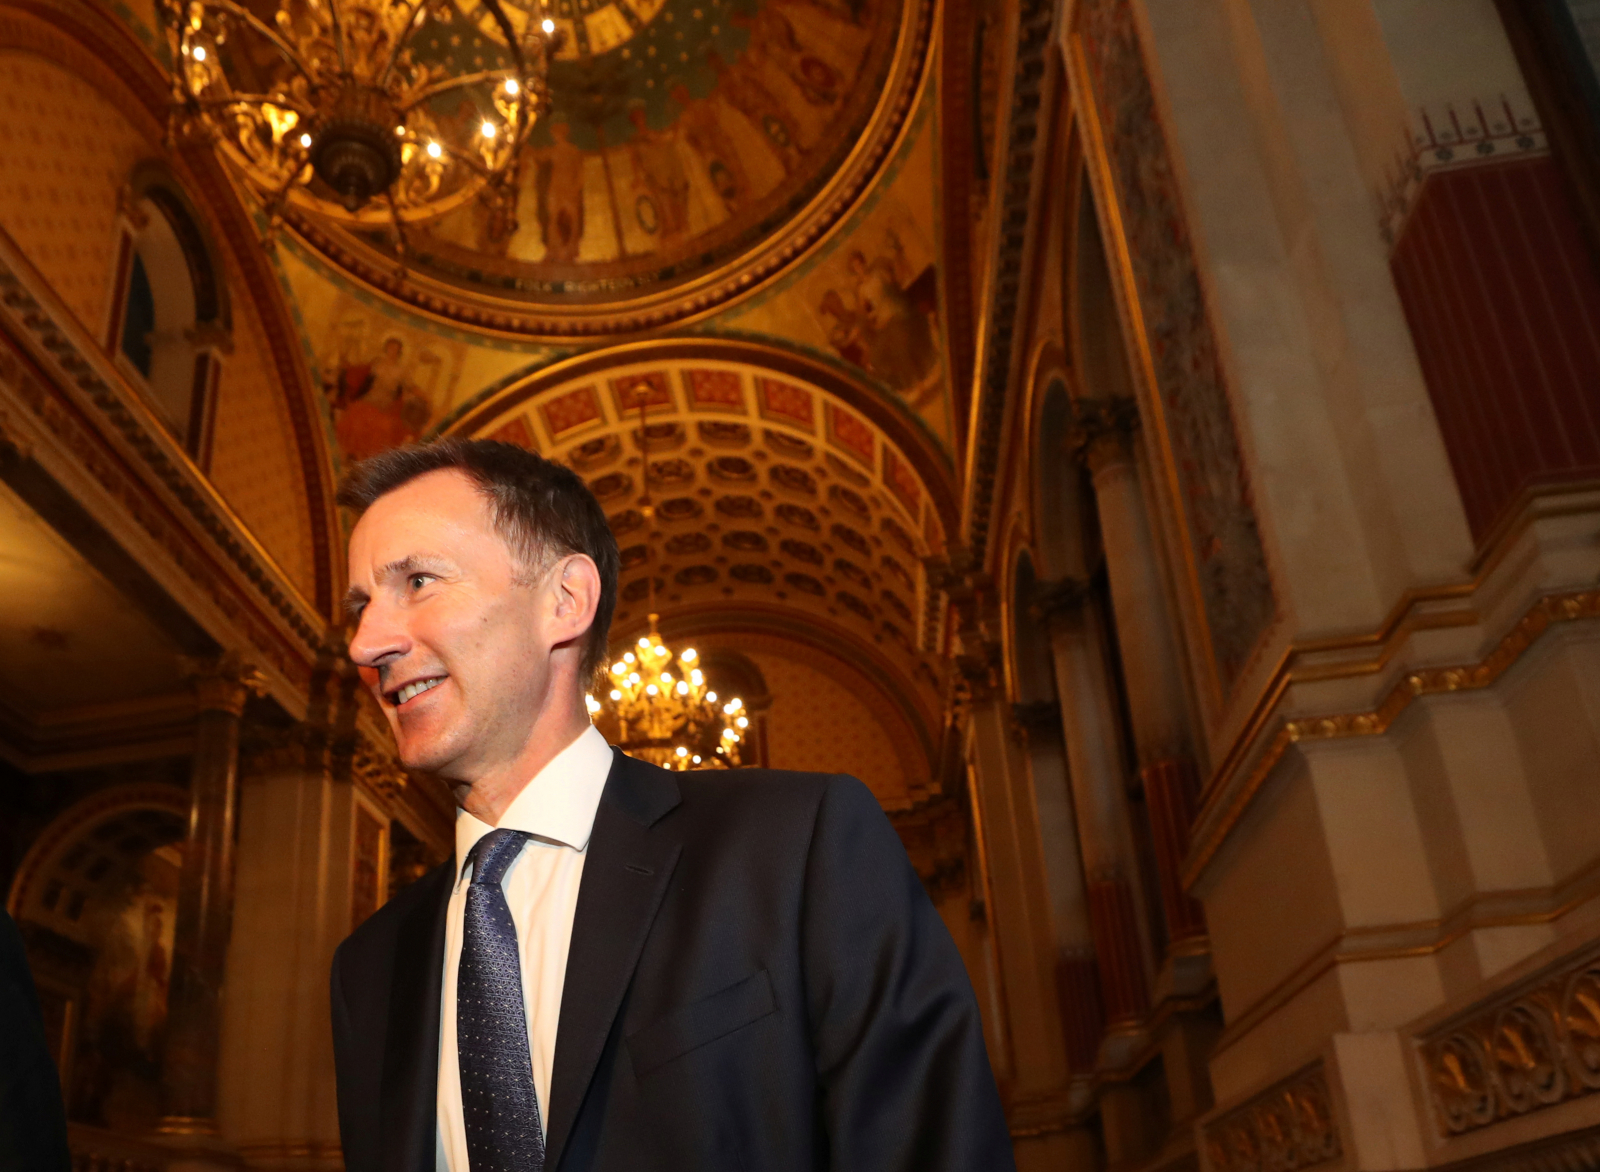 Jeremy Hunt is new UK foreign secretary